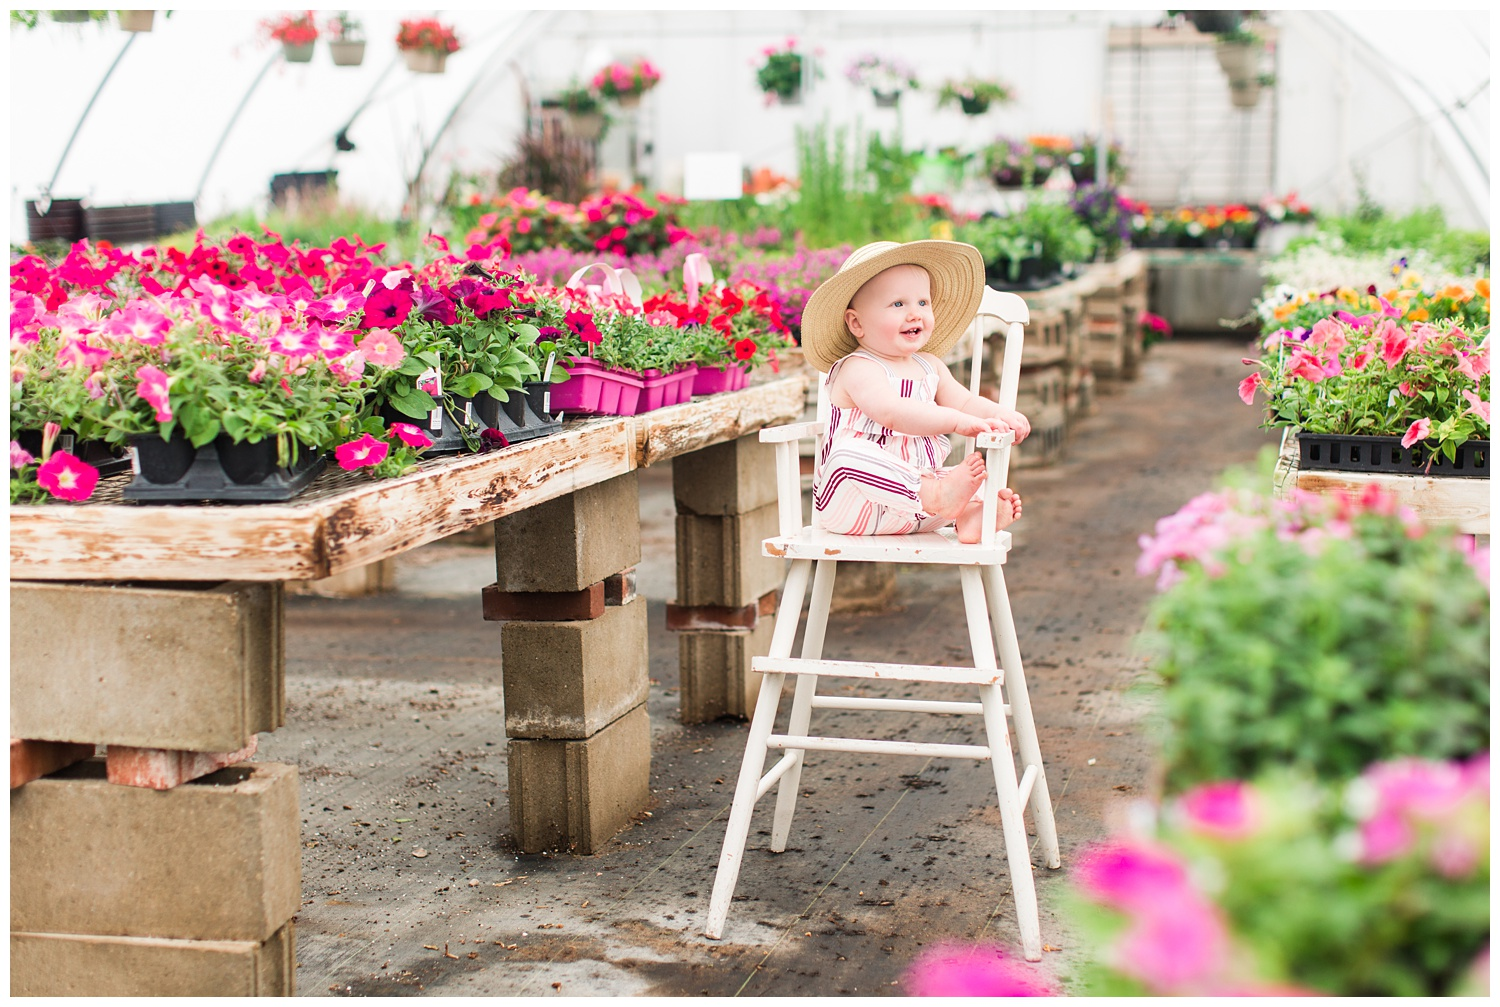 Baby Ivy sitting in a cream antique high chair surrounded by florals in a greenhouse wearing a fun floppy hat.